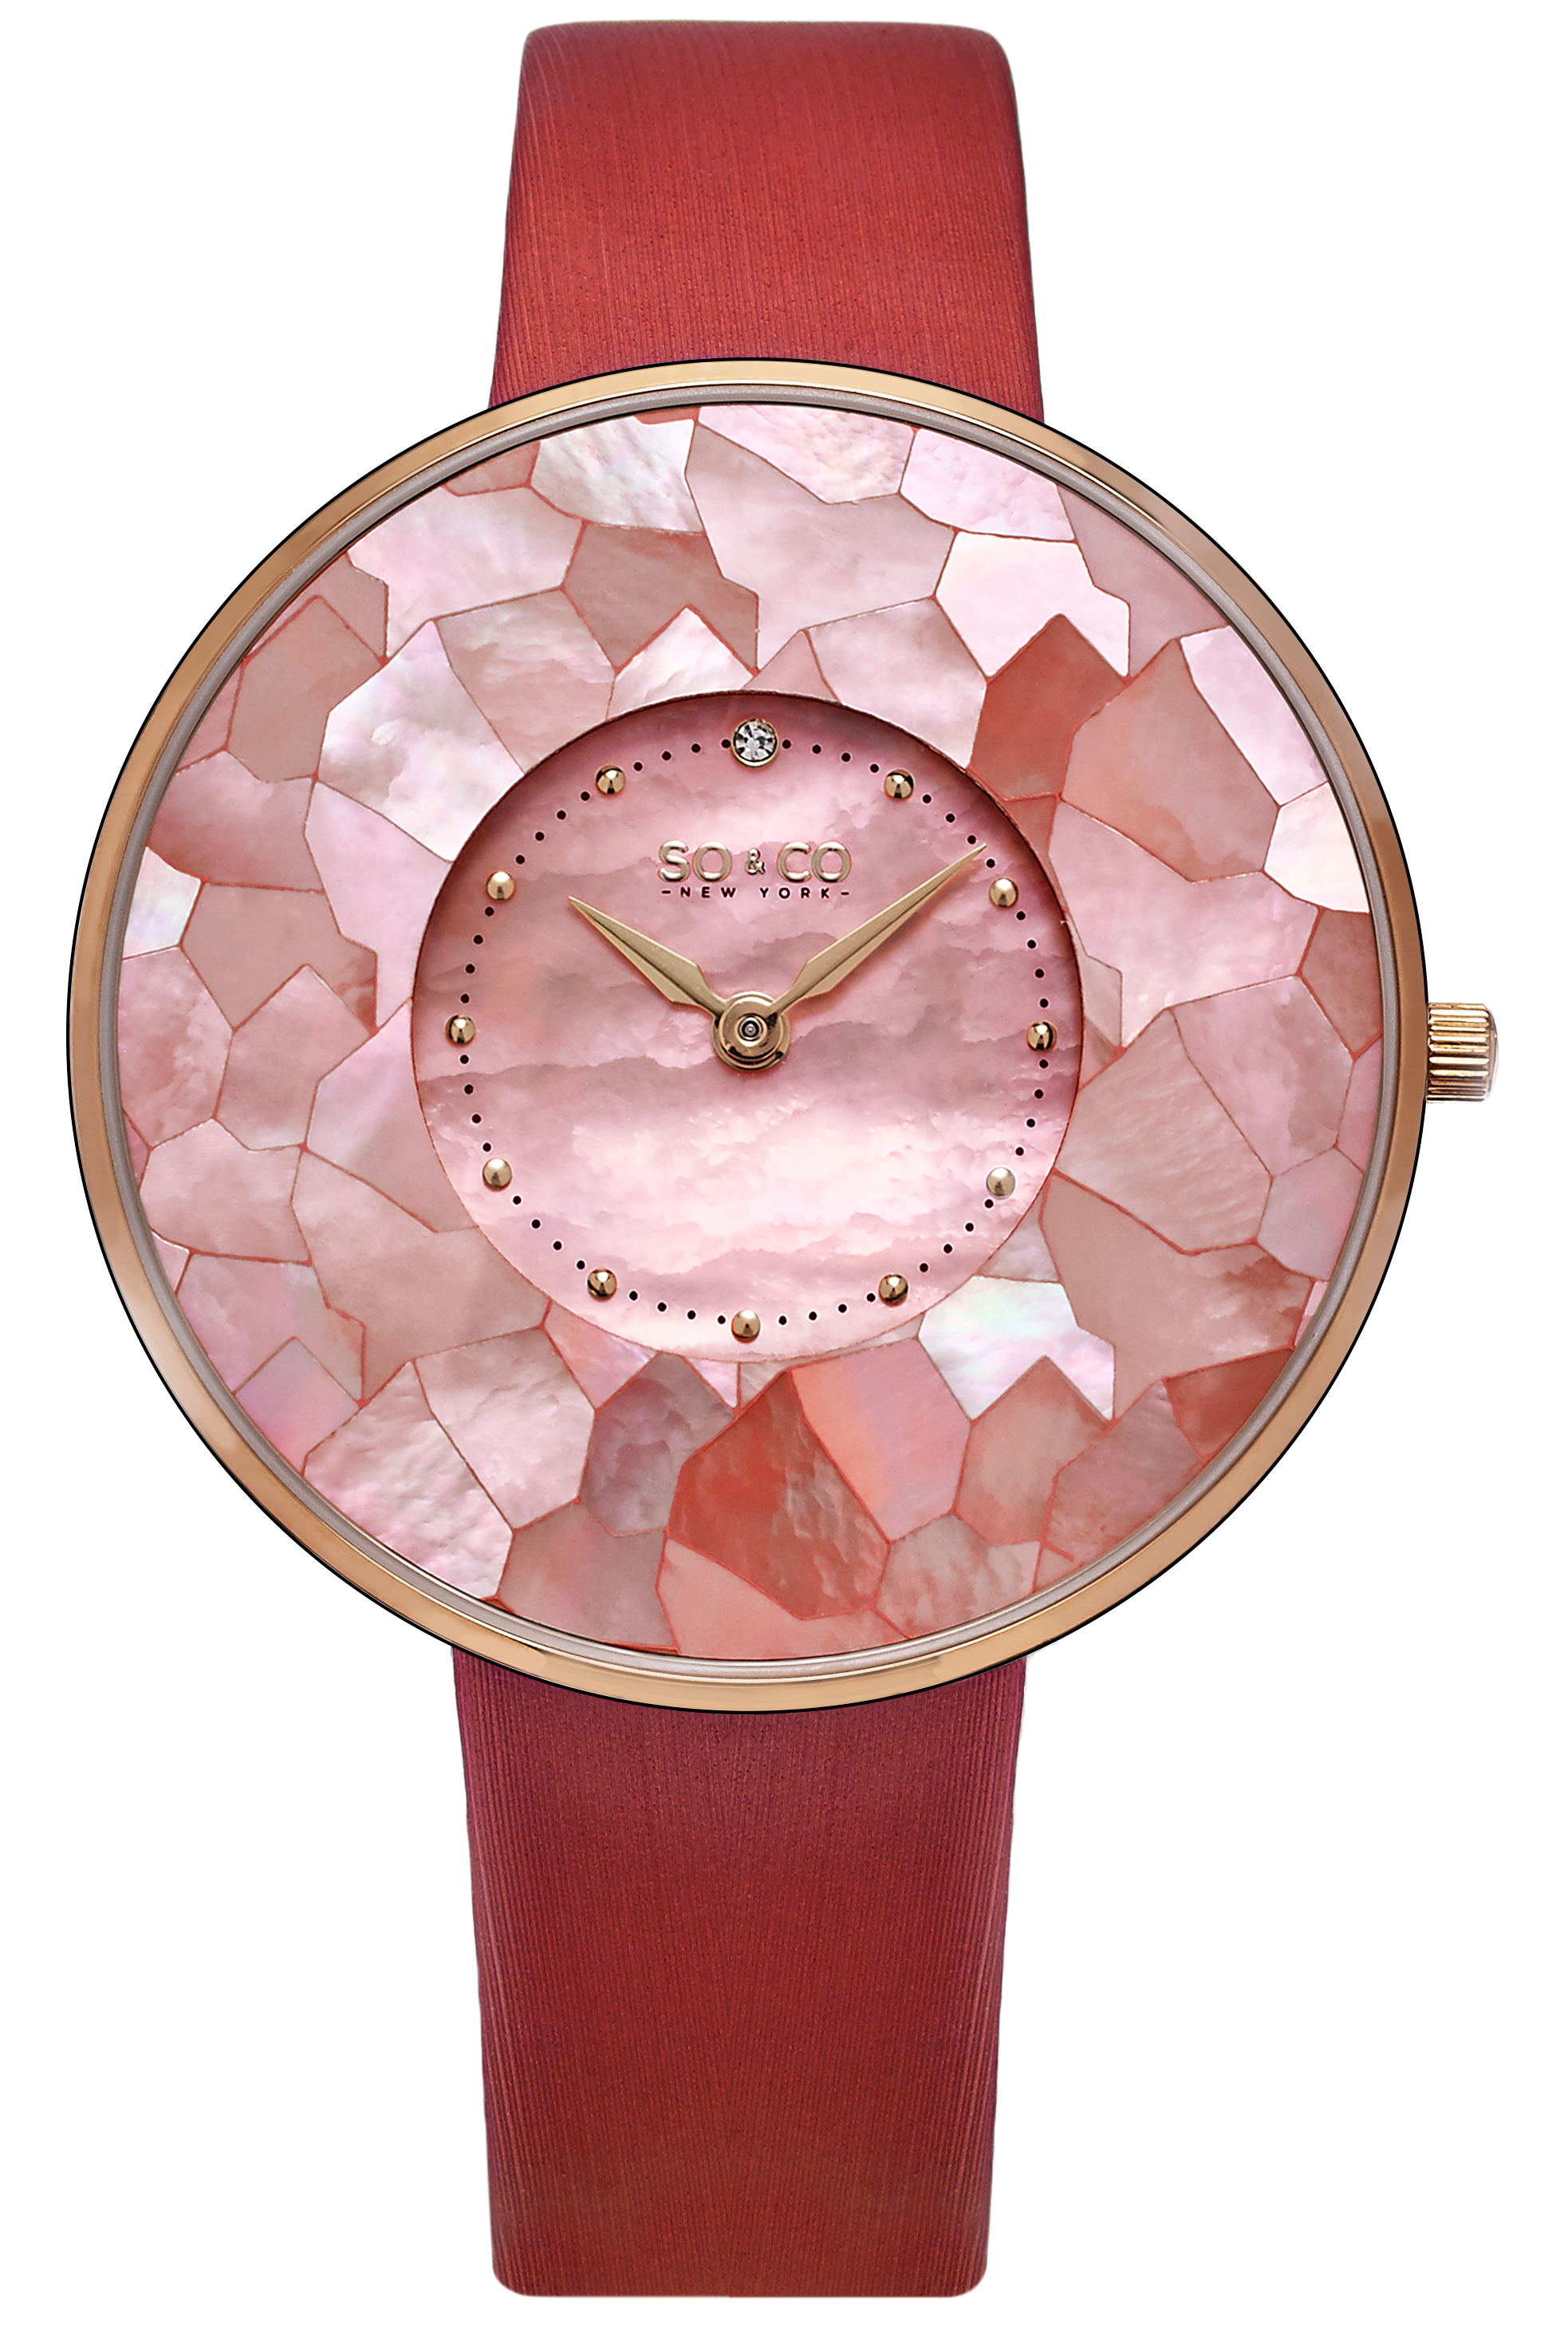 So & Co New York SoHo Damklocka 5274.3 Rosa/Satin Ø38 mm